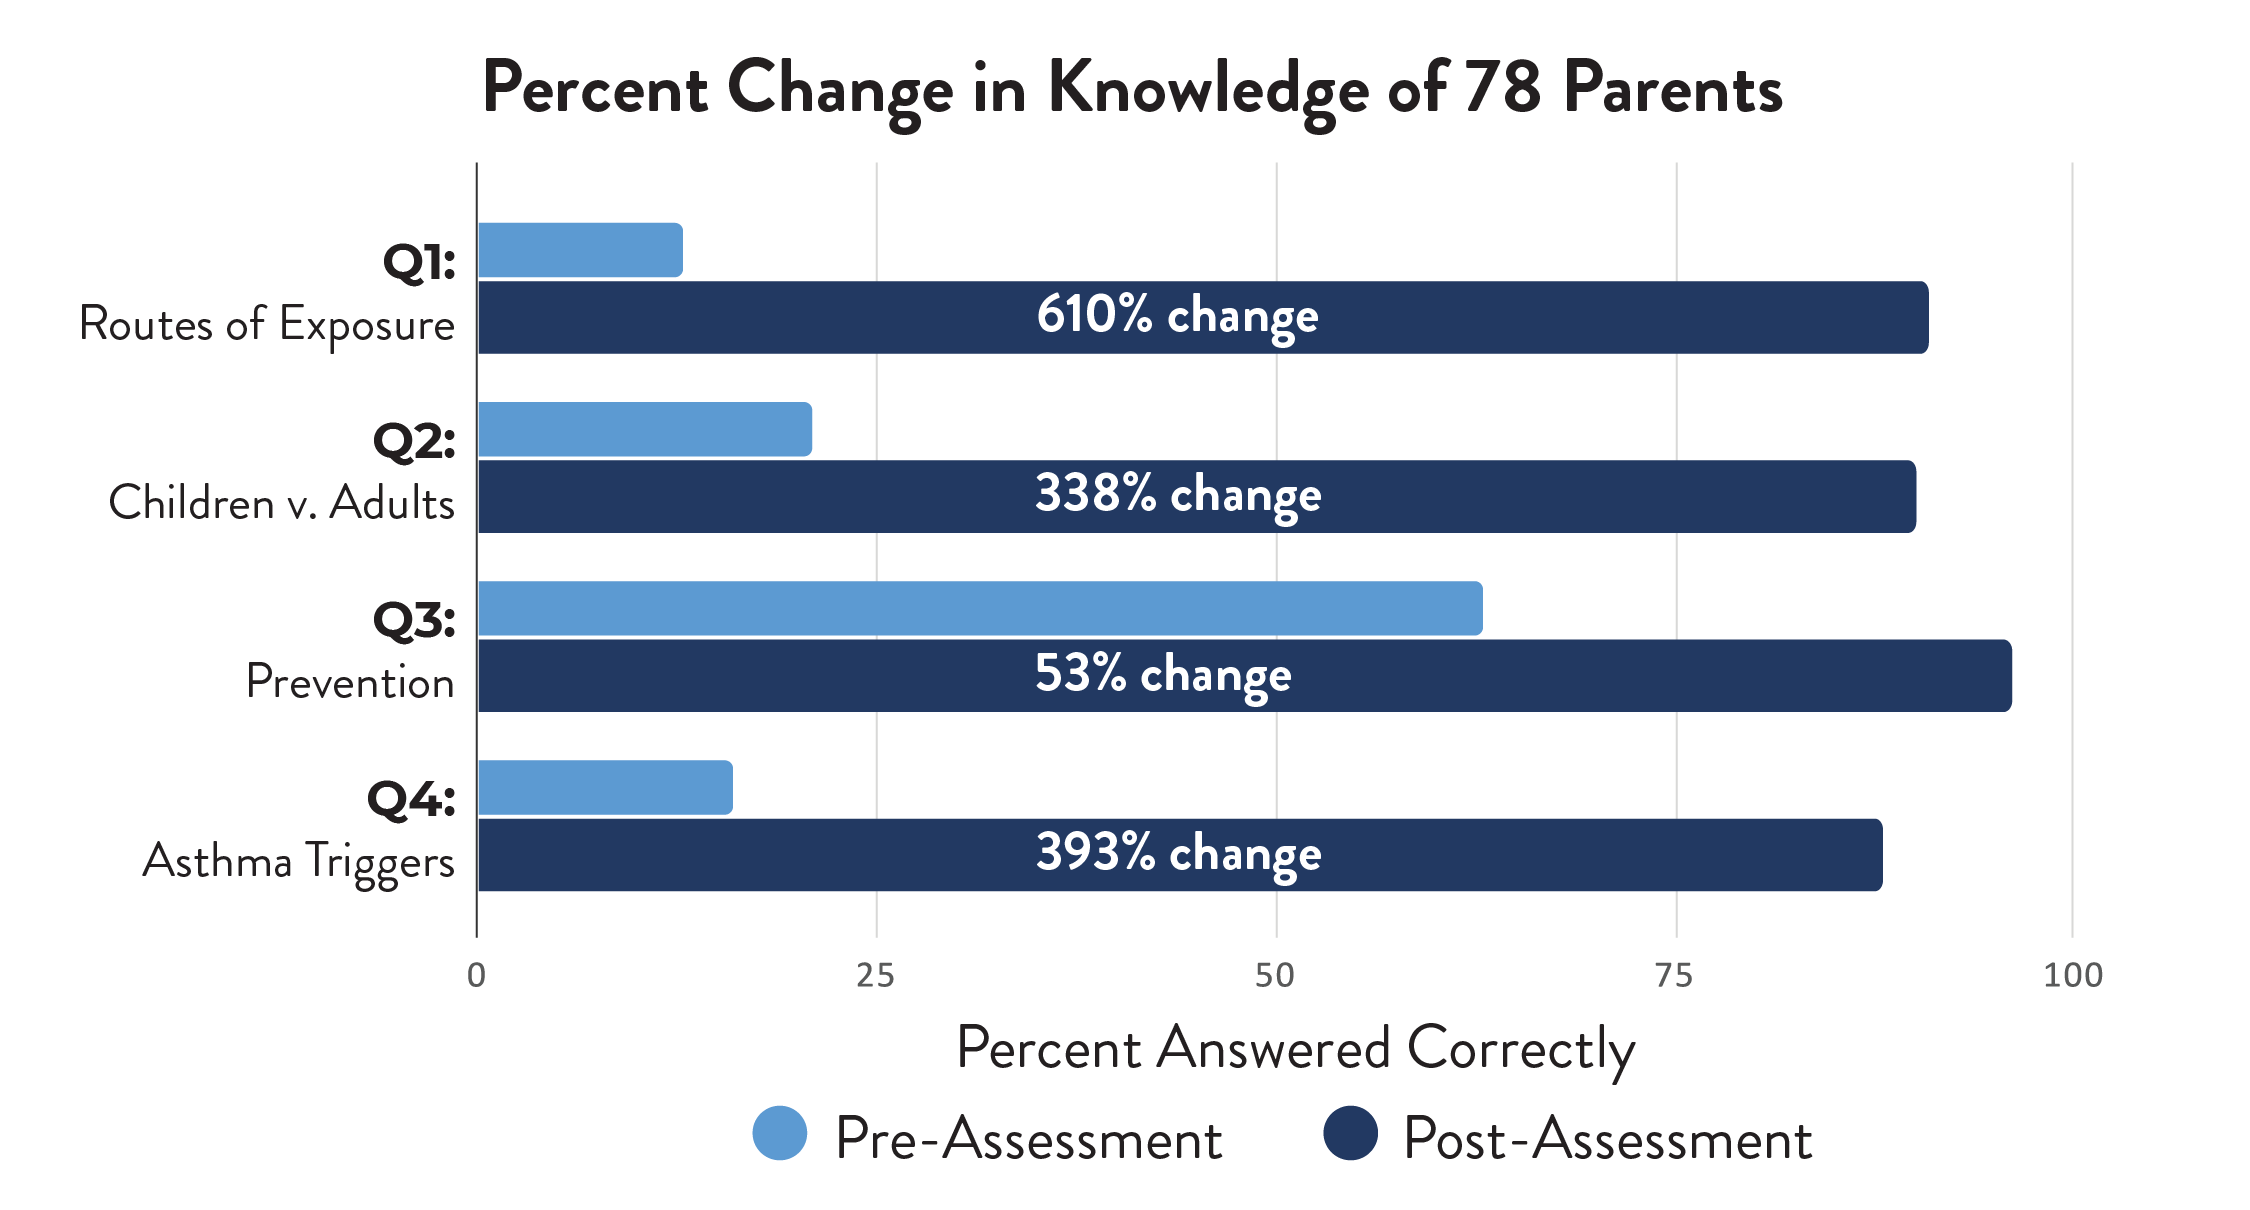 Percent Change in Knowledge bar graph